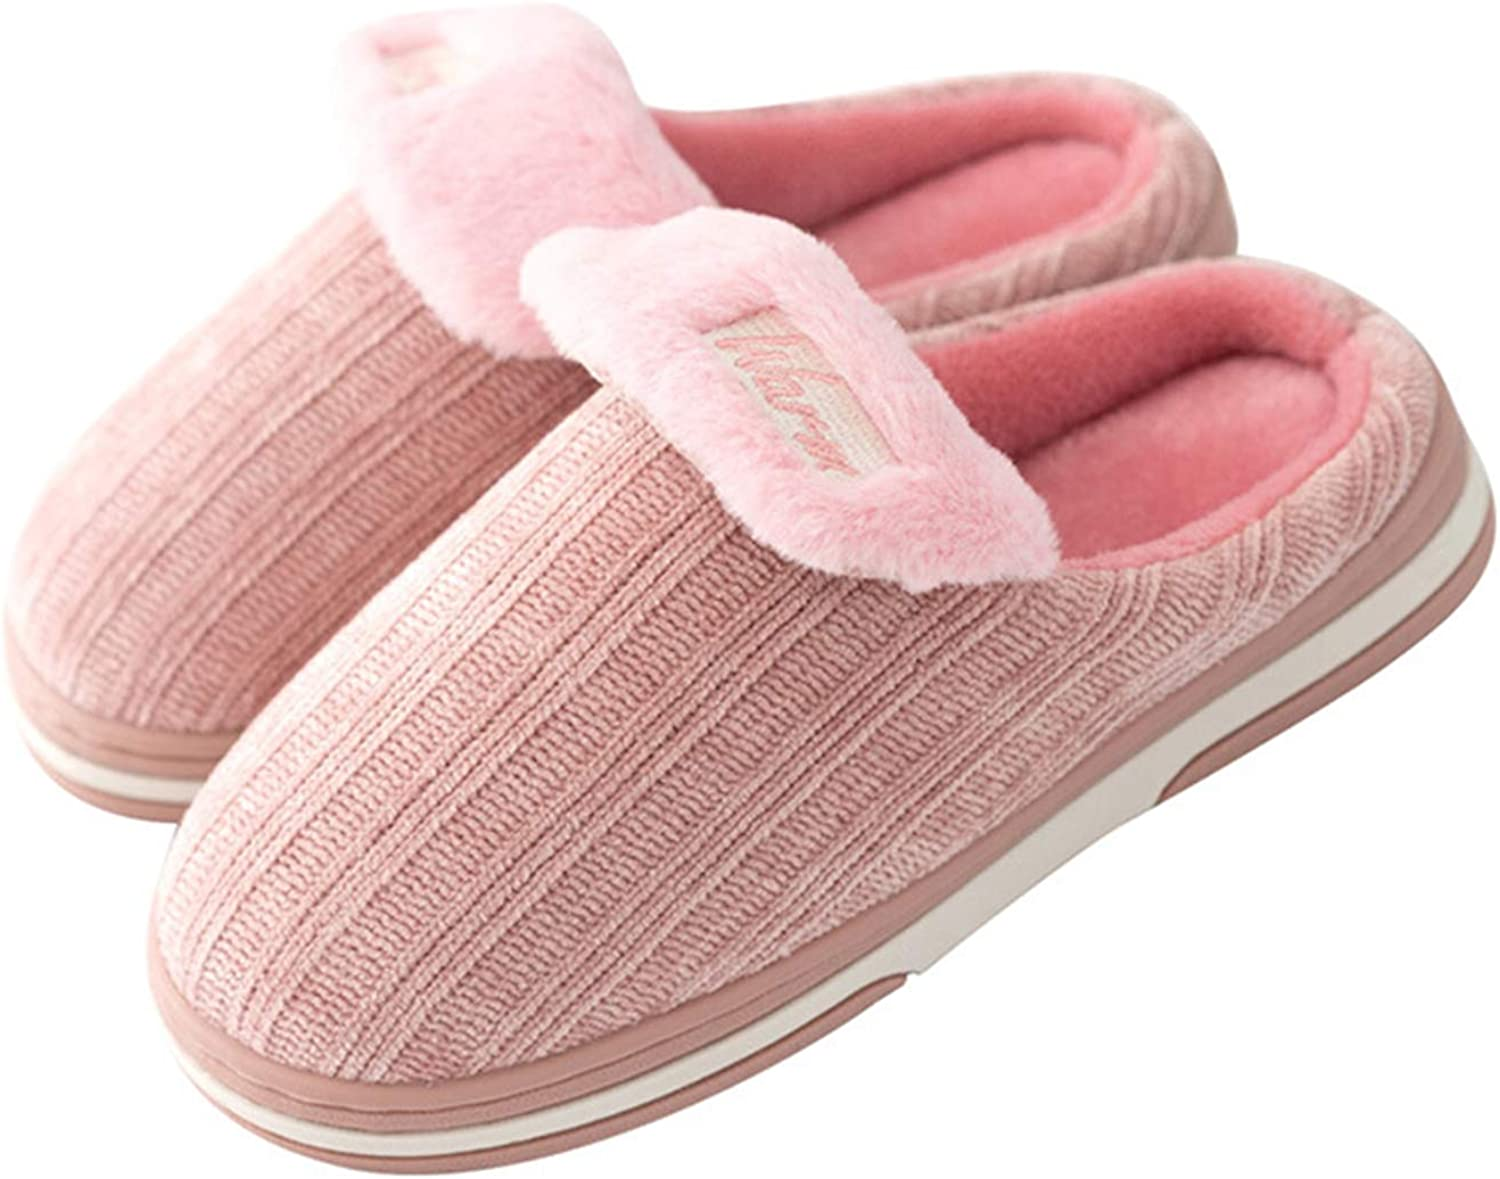 Indoor House Women's Slippers Autumn Winter Cotton Warm Comfortable shoes Anti-Slip Cute Plush Slippers,Pink